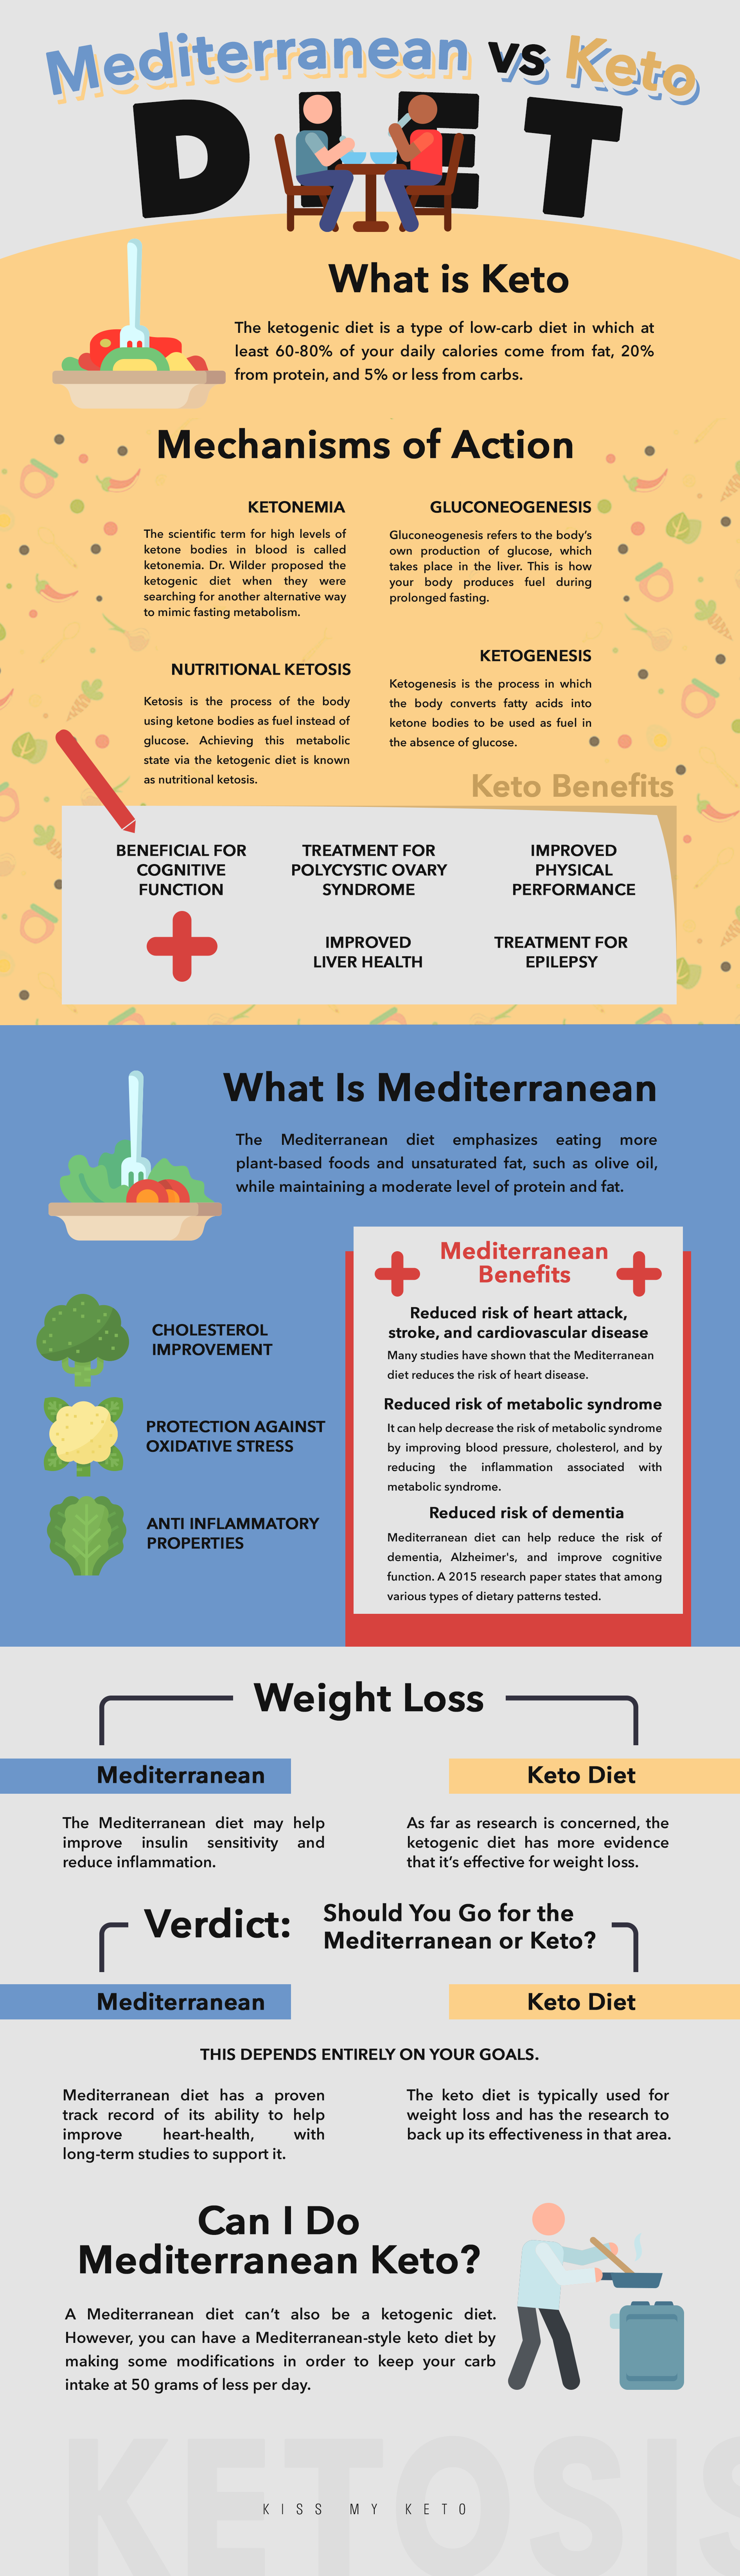 difference between keto and mediterranean diet